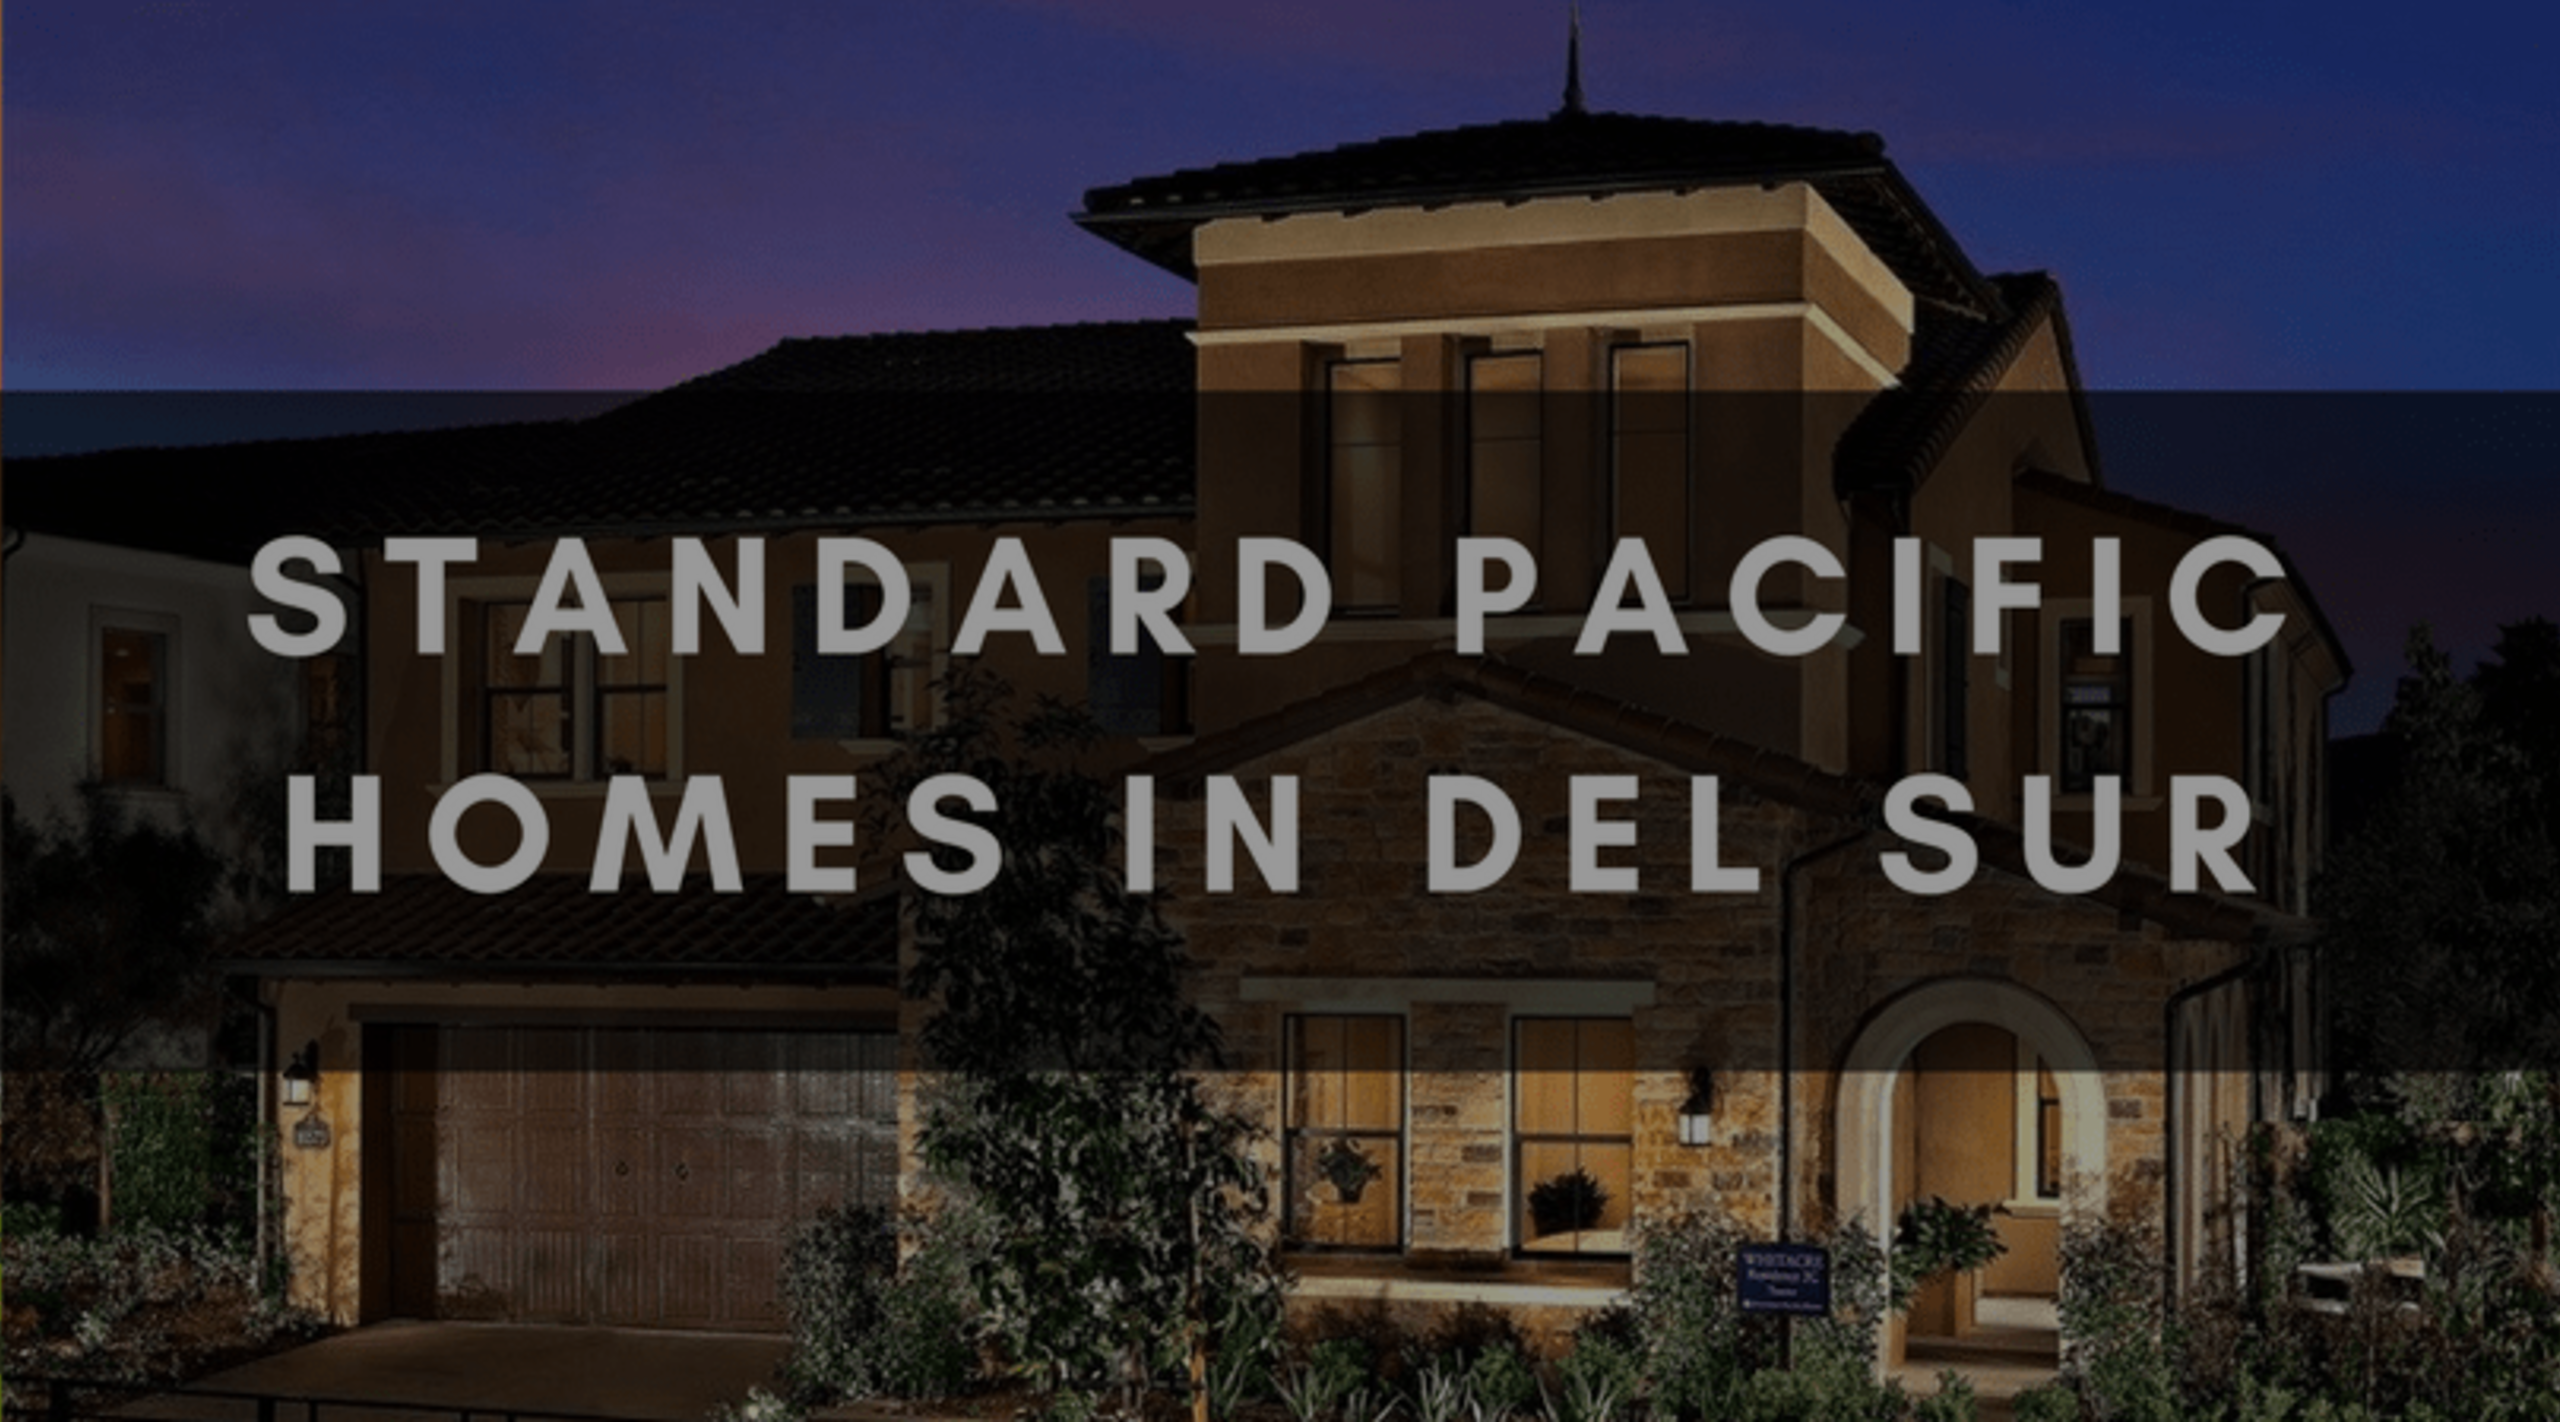 STANDARD PACIFIC HOMES IN DEL SUR